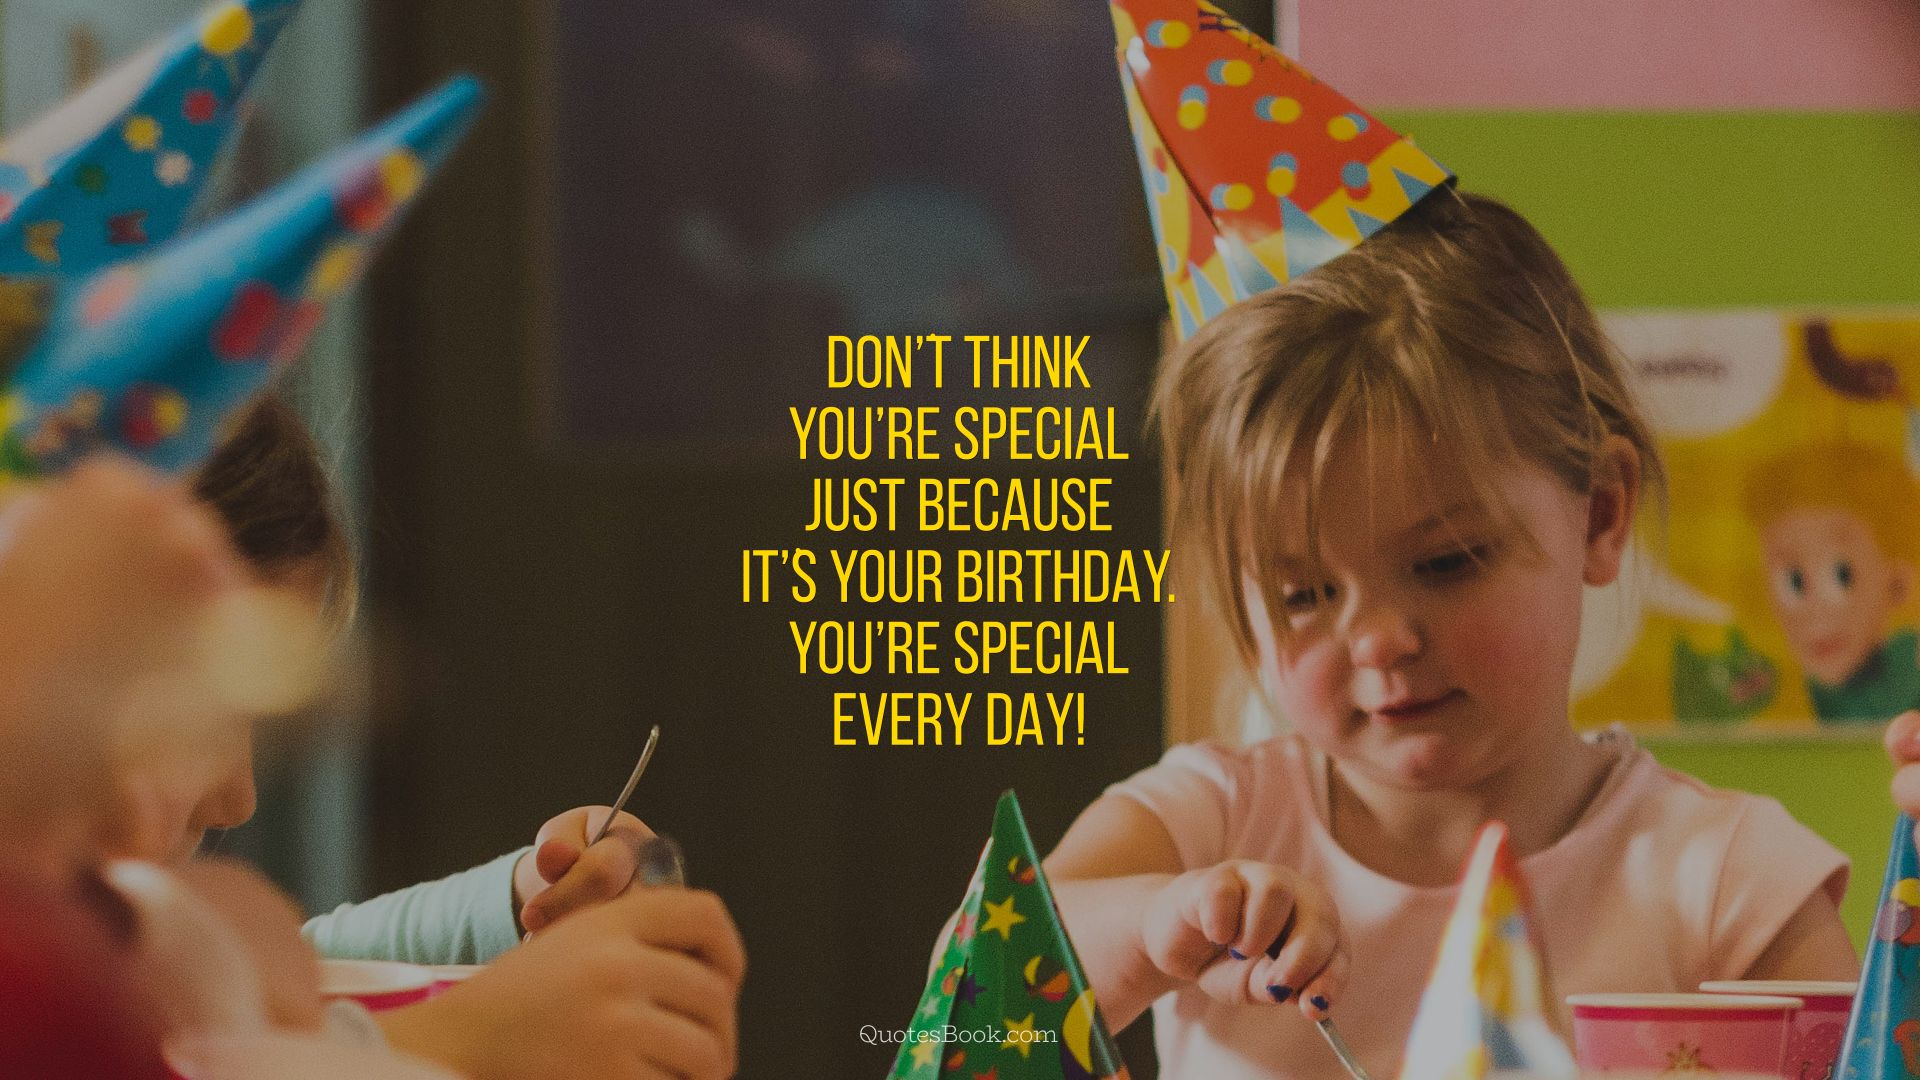 Donֹ't think you're special just because itֹ's your Birthday. You're special every day!